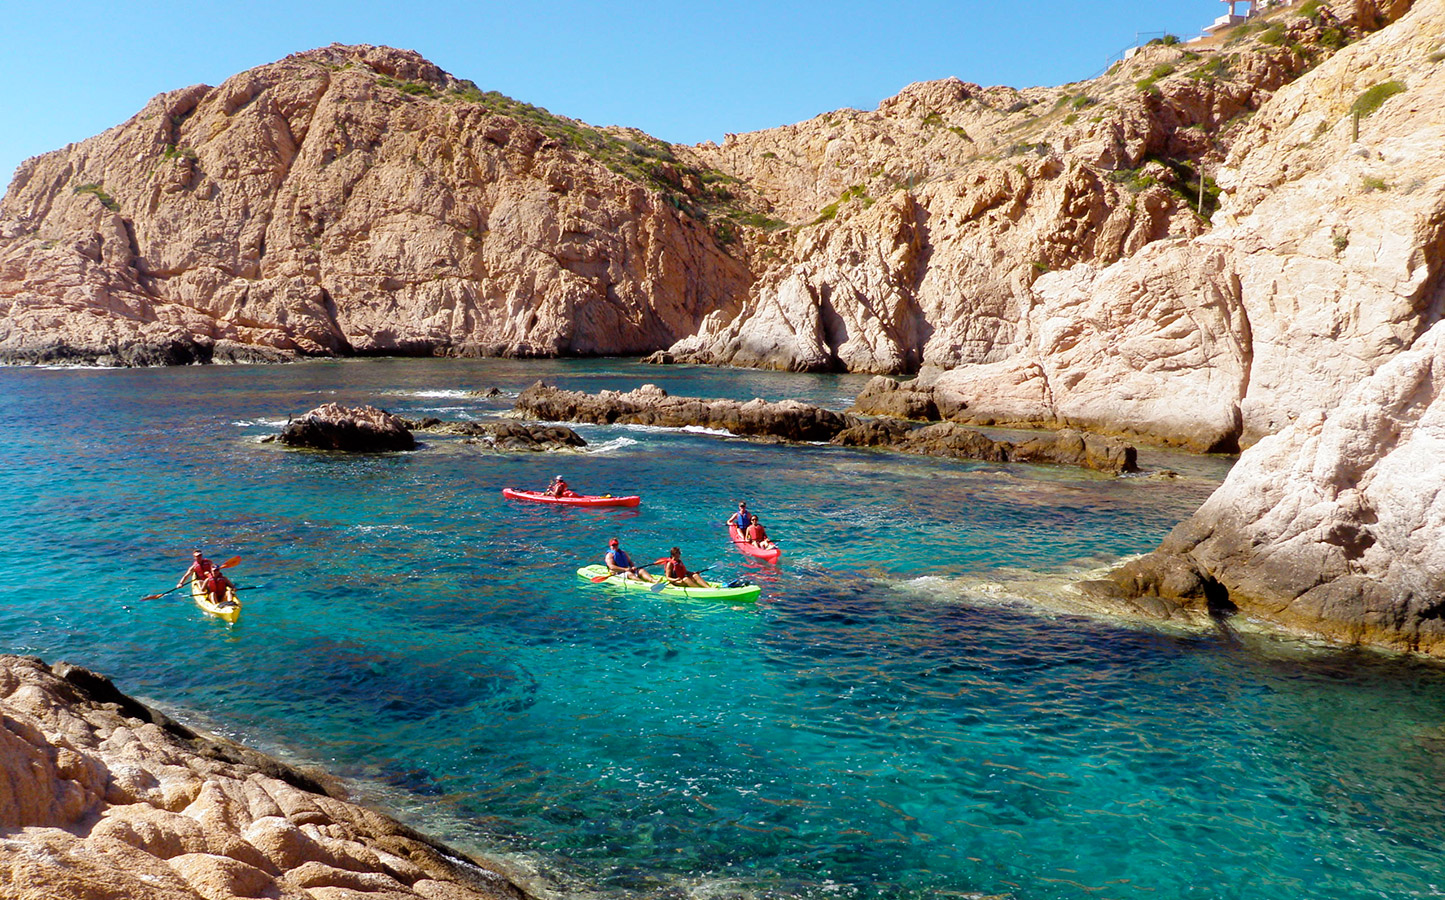 Sea Kayaking in a Cove in Baja - Yoga Retreat - Mexico